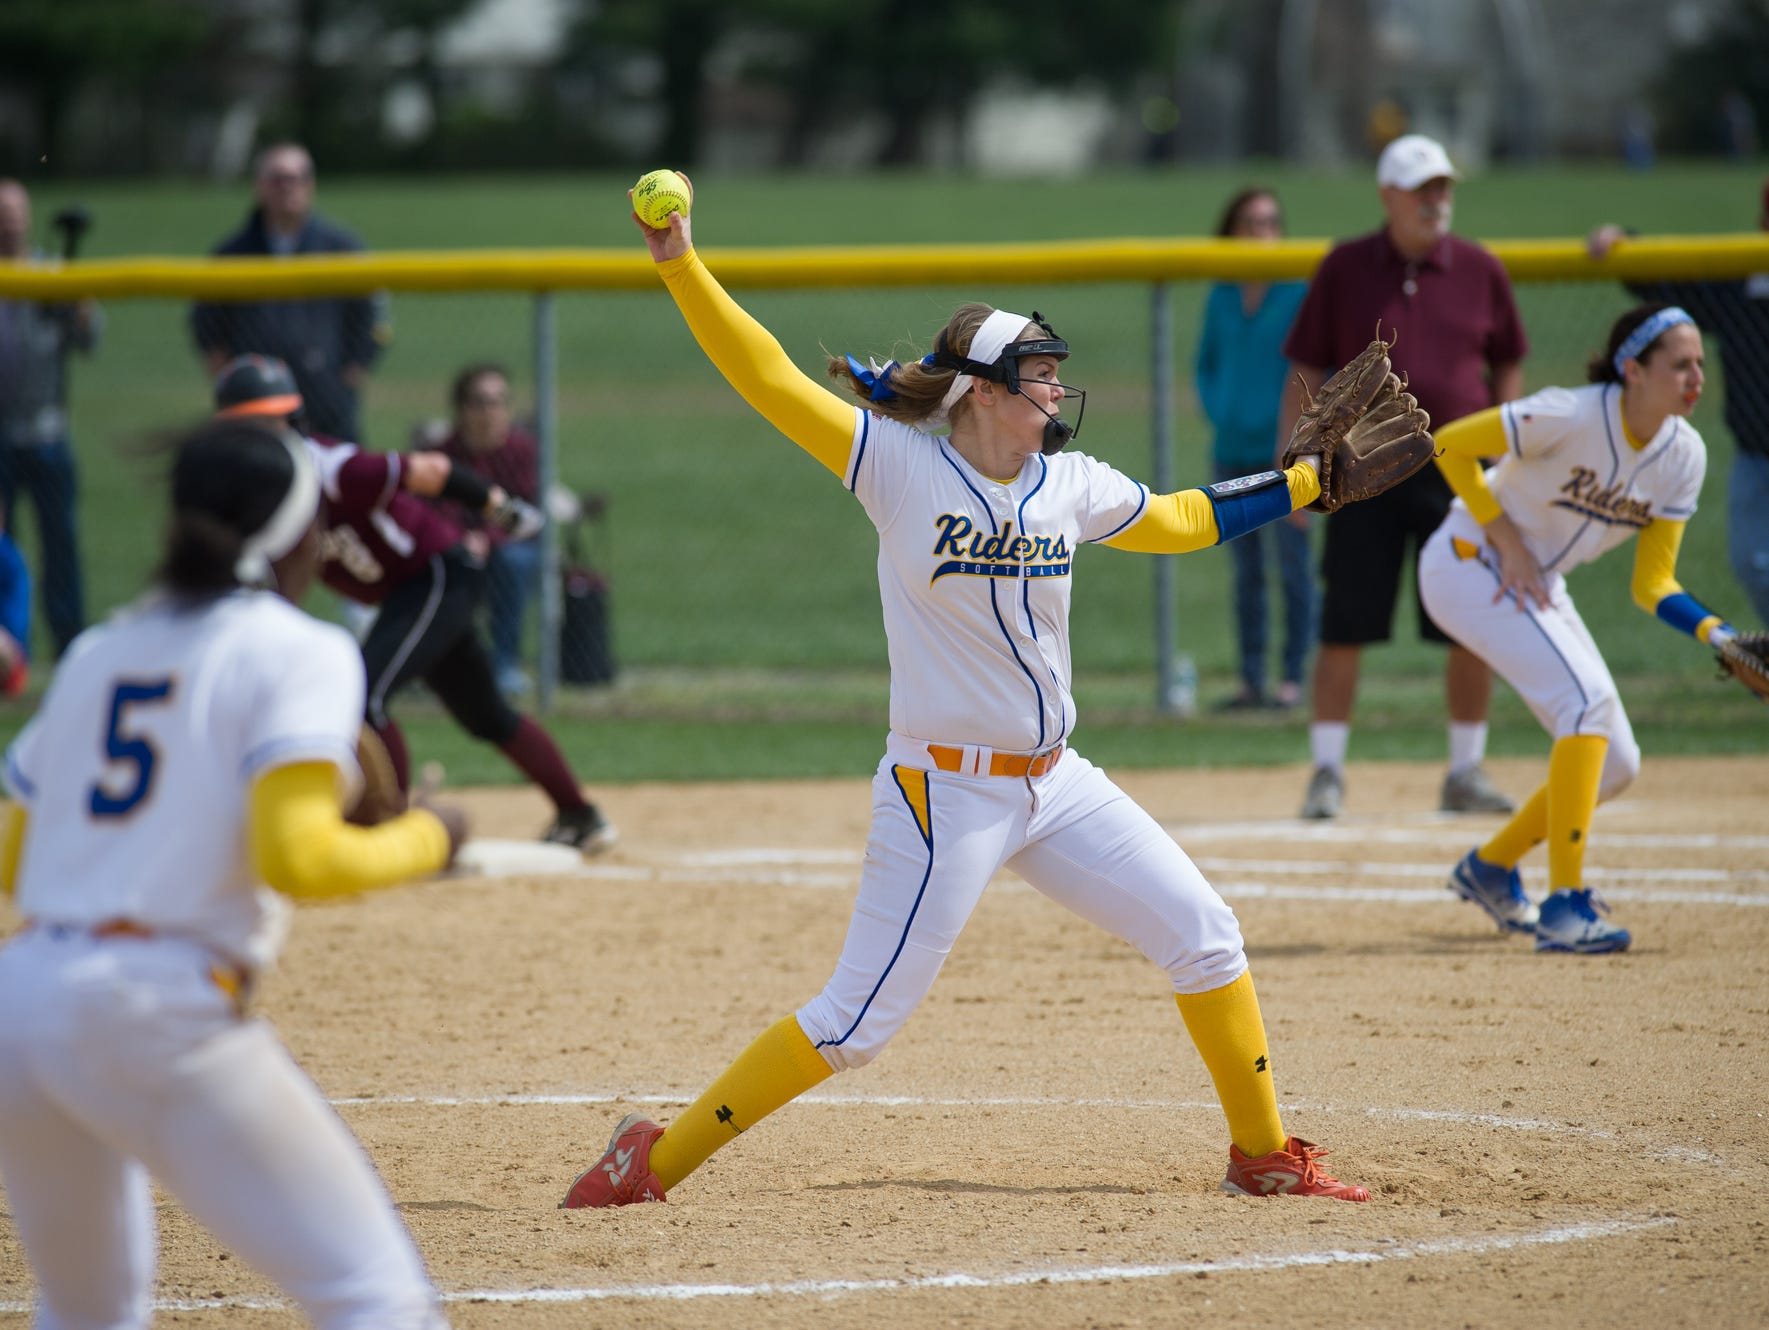 Caesar Rodney's pitcher Alyssa Ball (9) throws a pitch in their game against Concord.